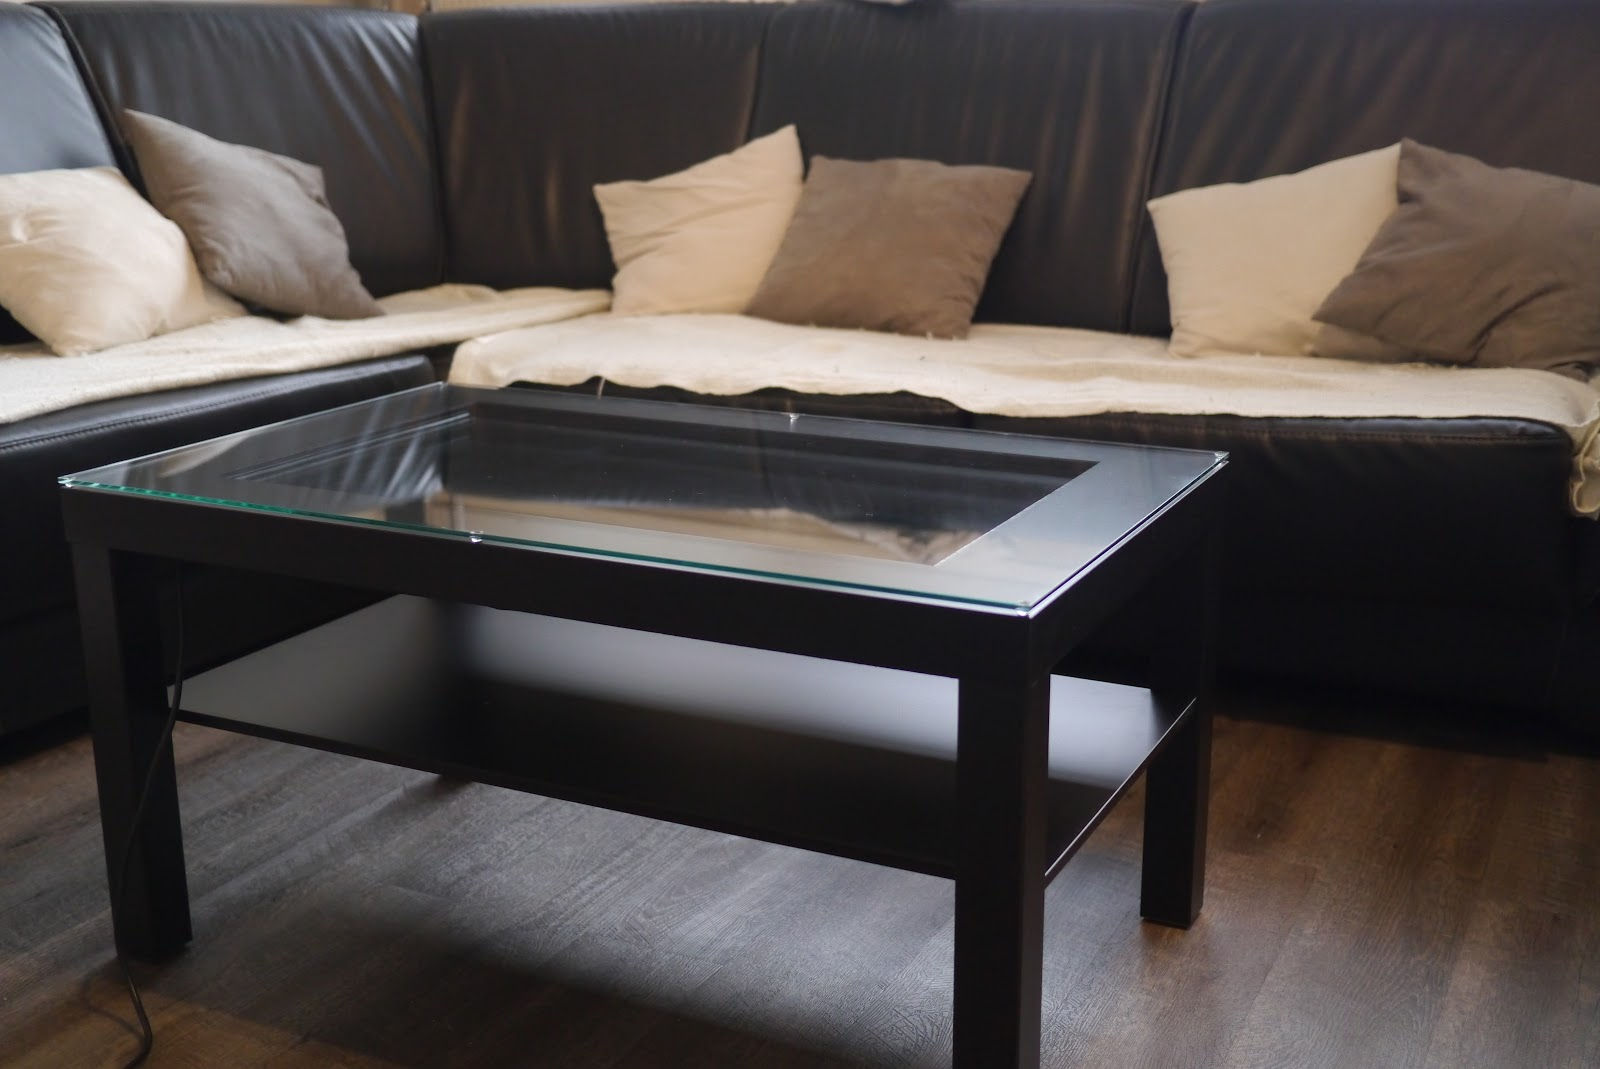 Le diy de droofy table basse tactile v2 pqlab for Plateau en verre pour table basse